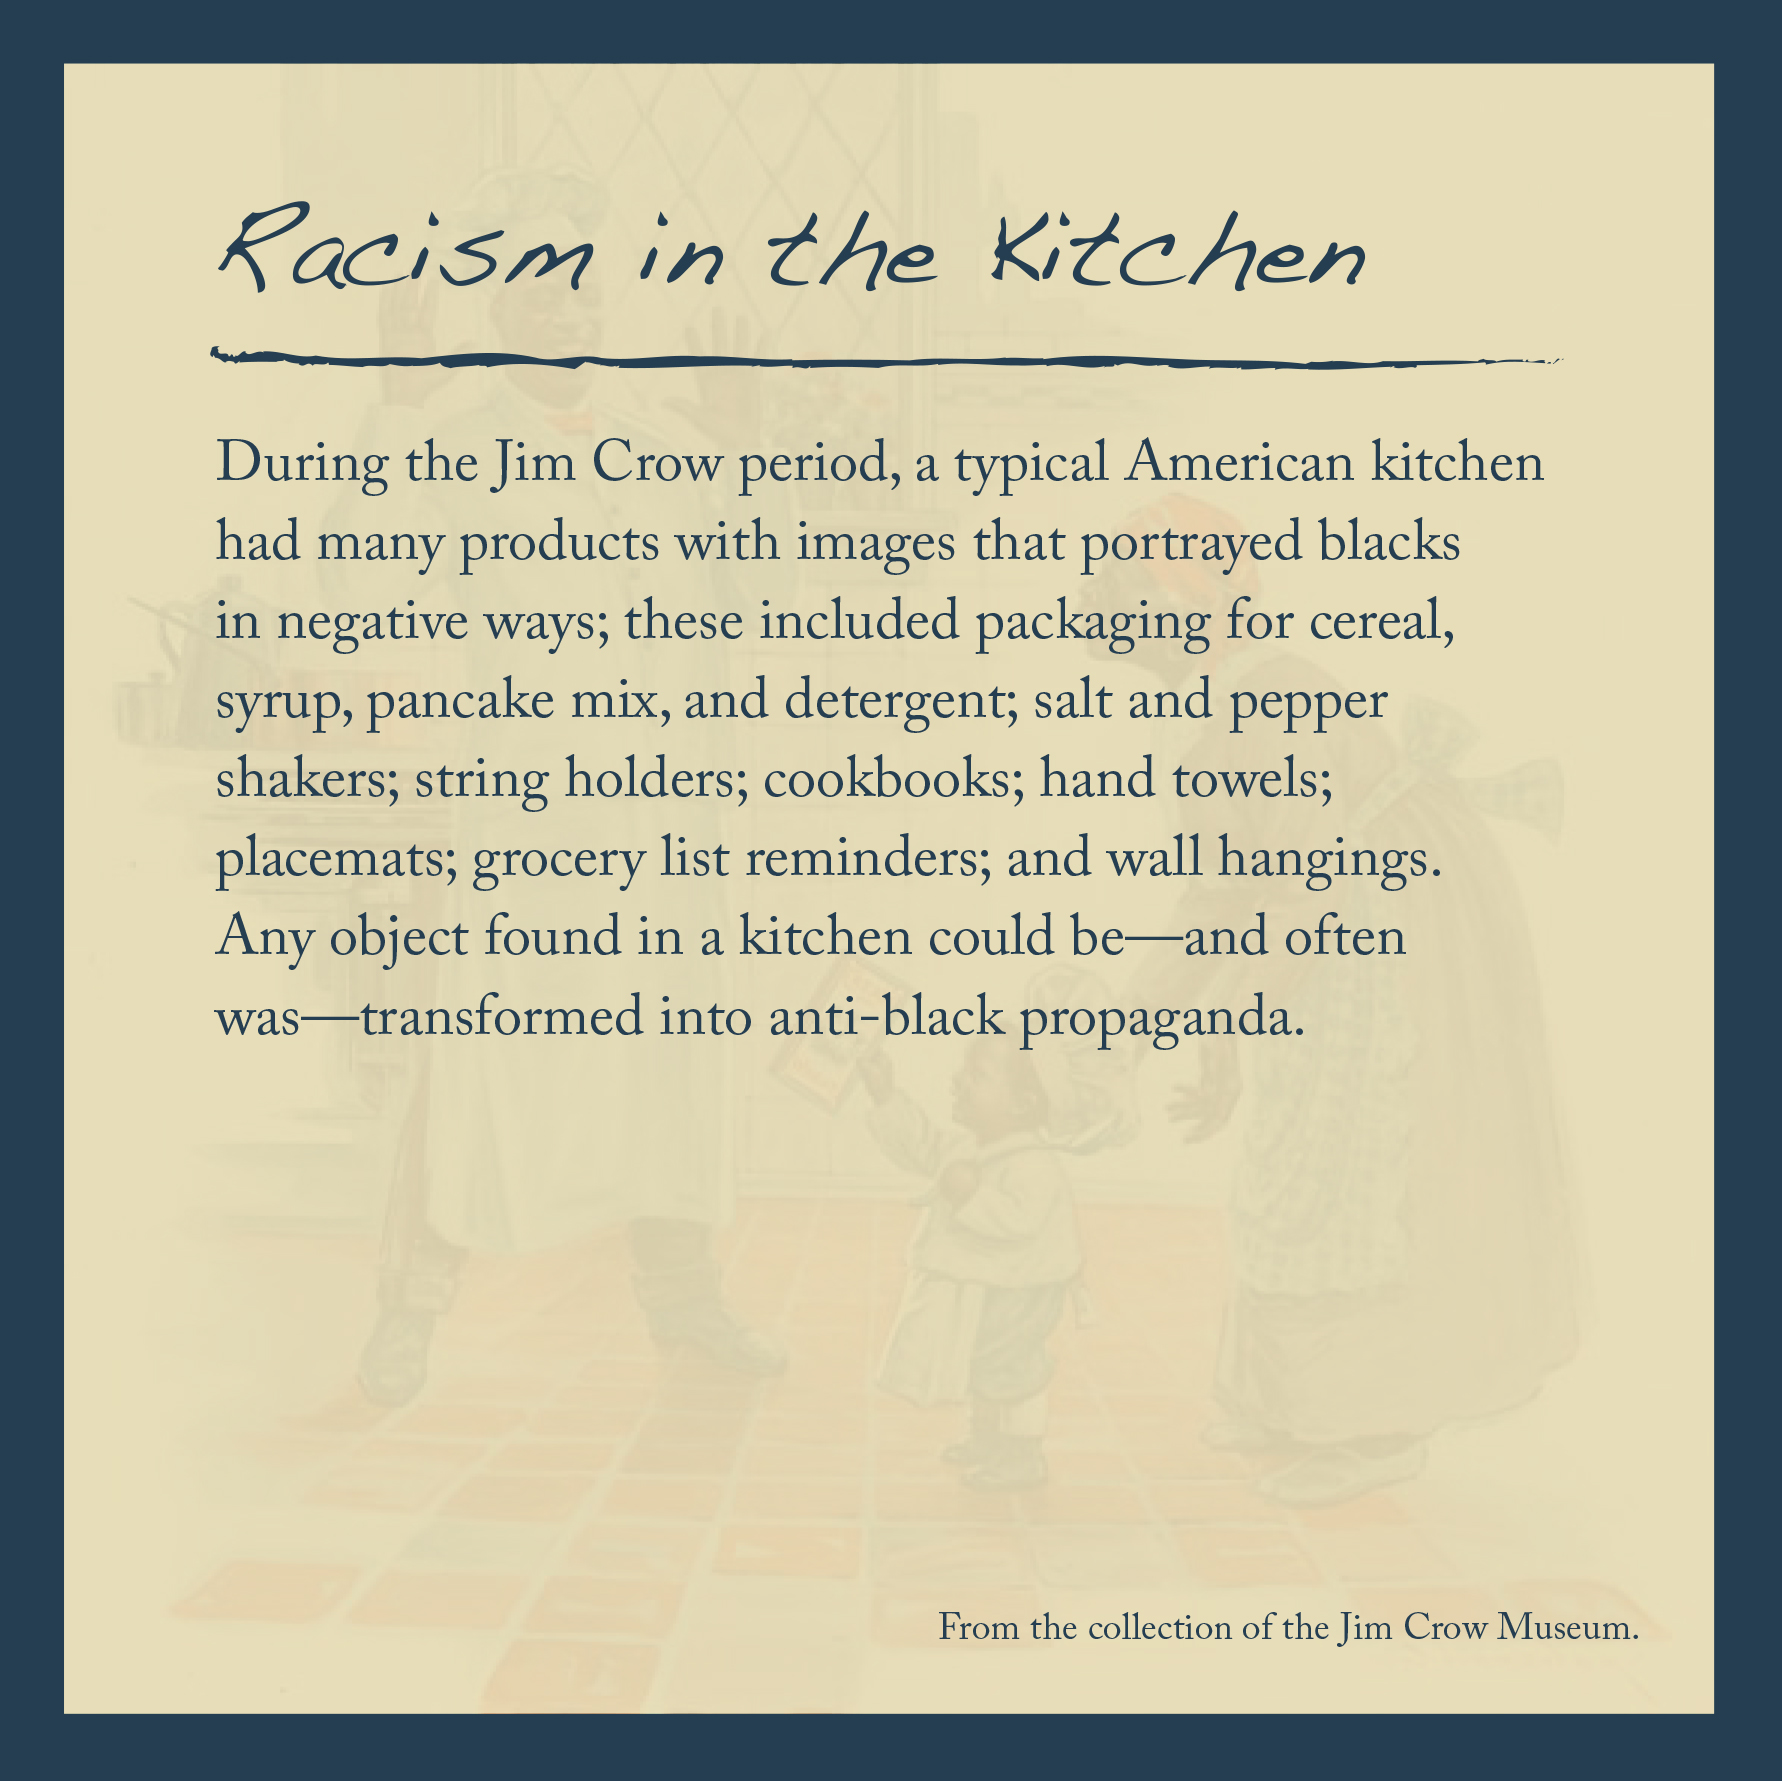 Racism in the Kitchen.jpg